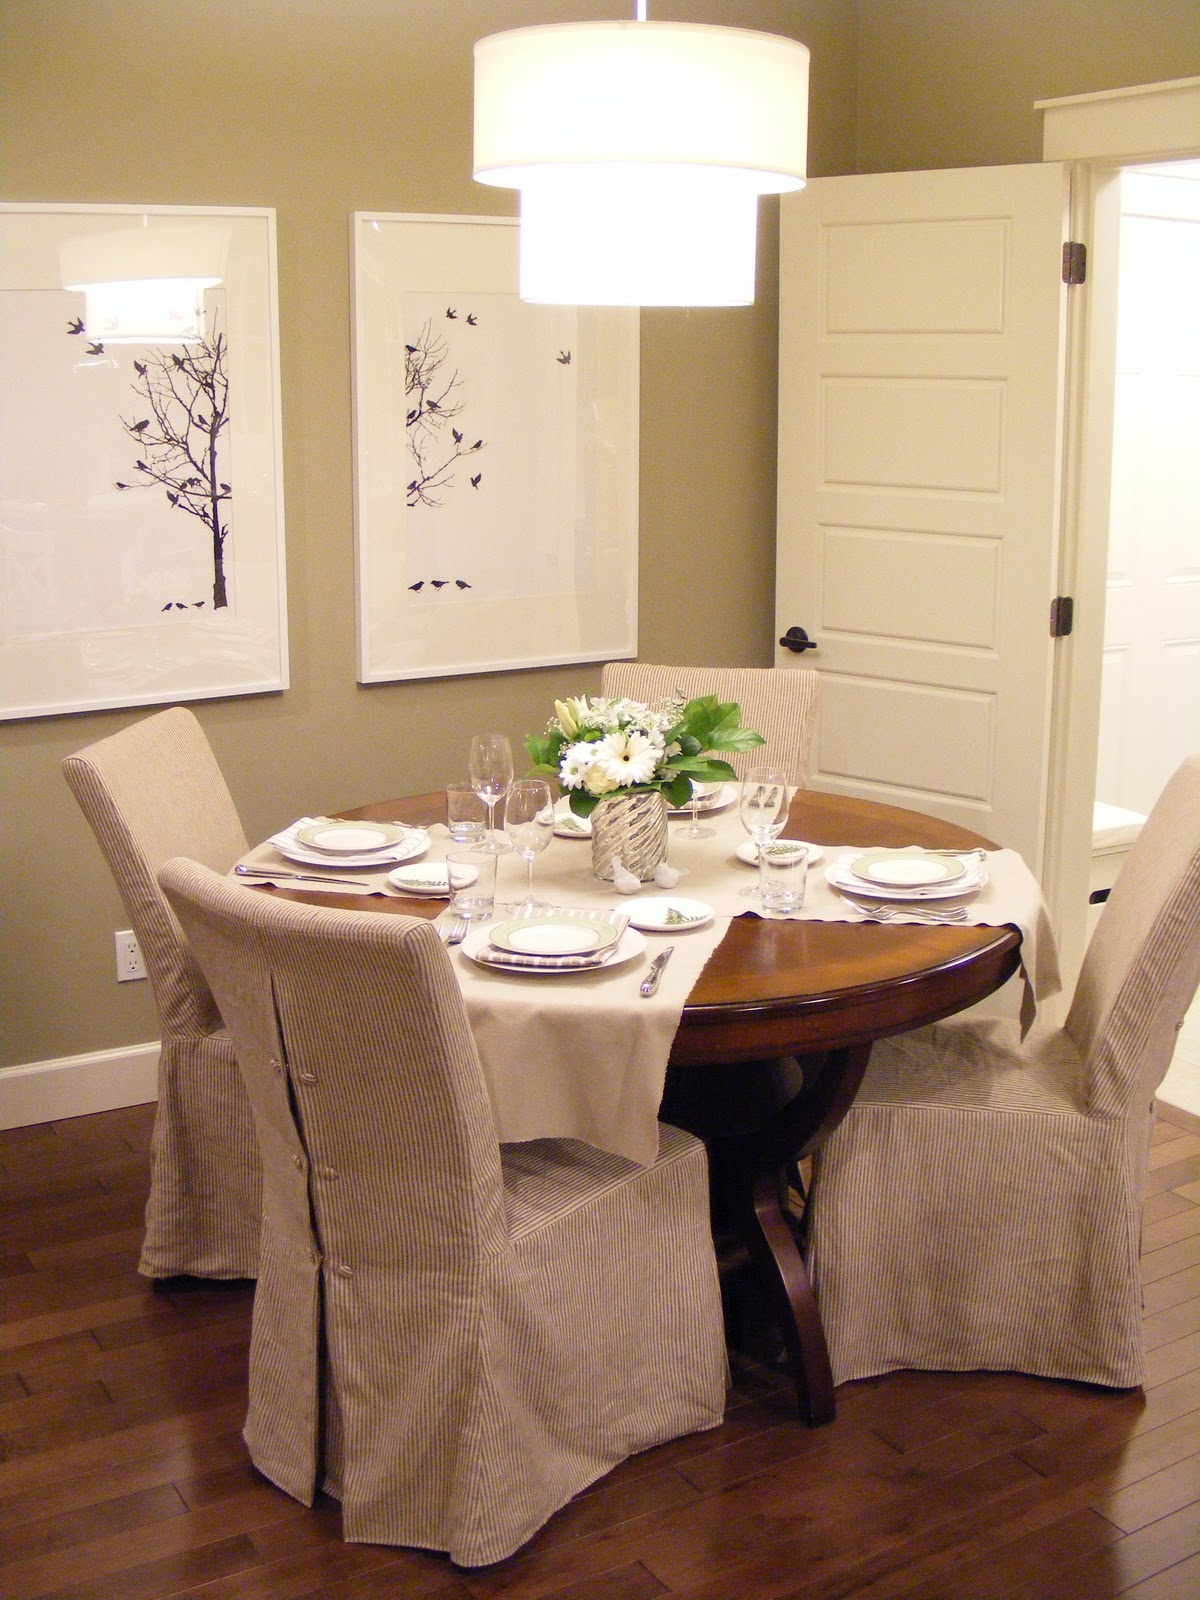 Dining room chair slipcovers and also removable dining chair seat covers and also round back dining chair slipcovers and also tartan dining chair covers